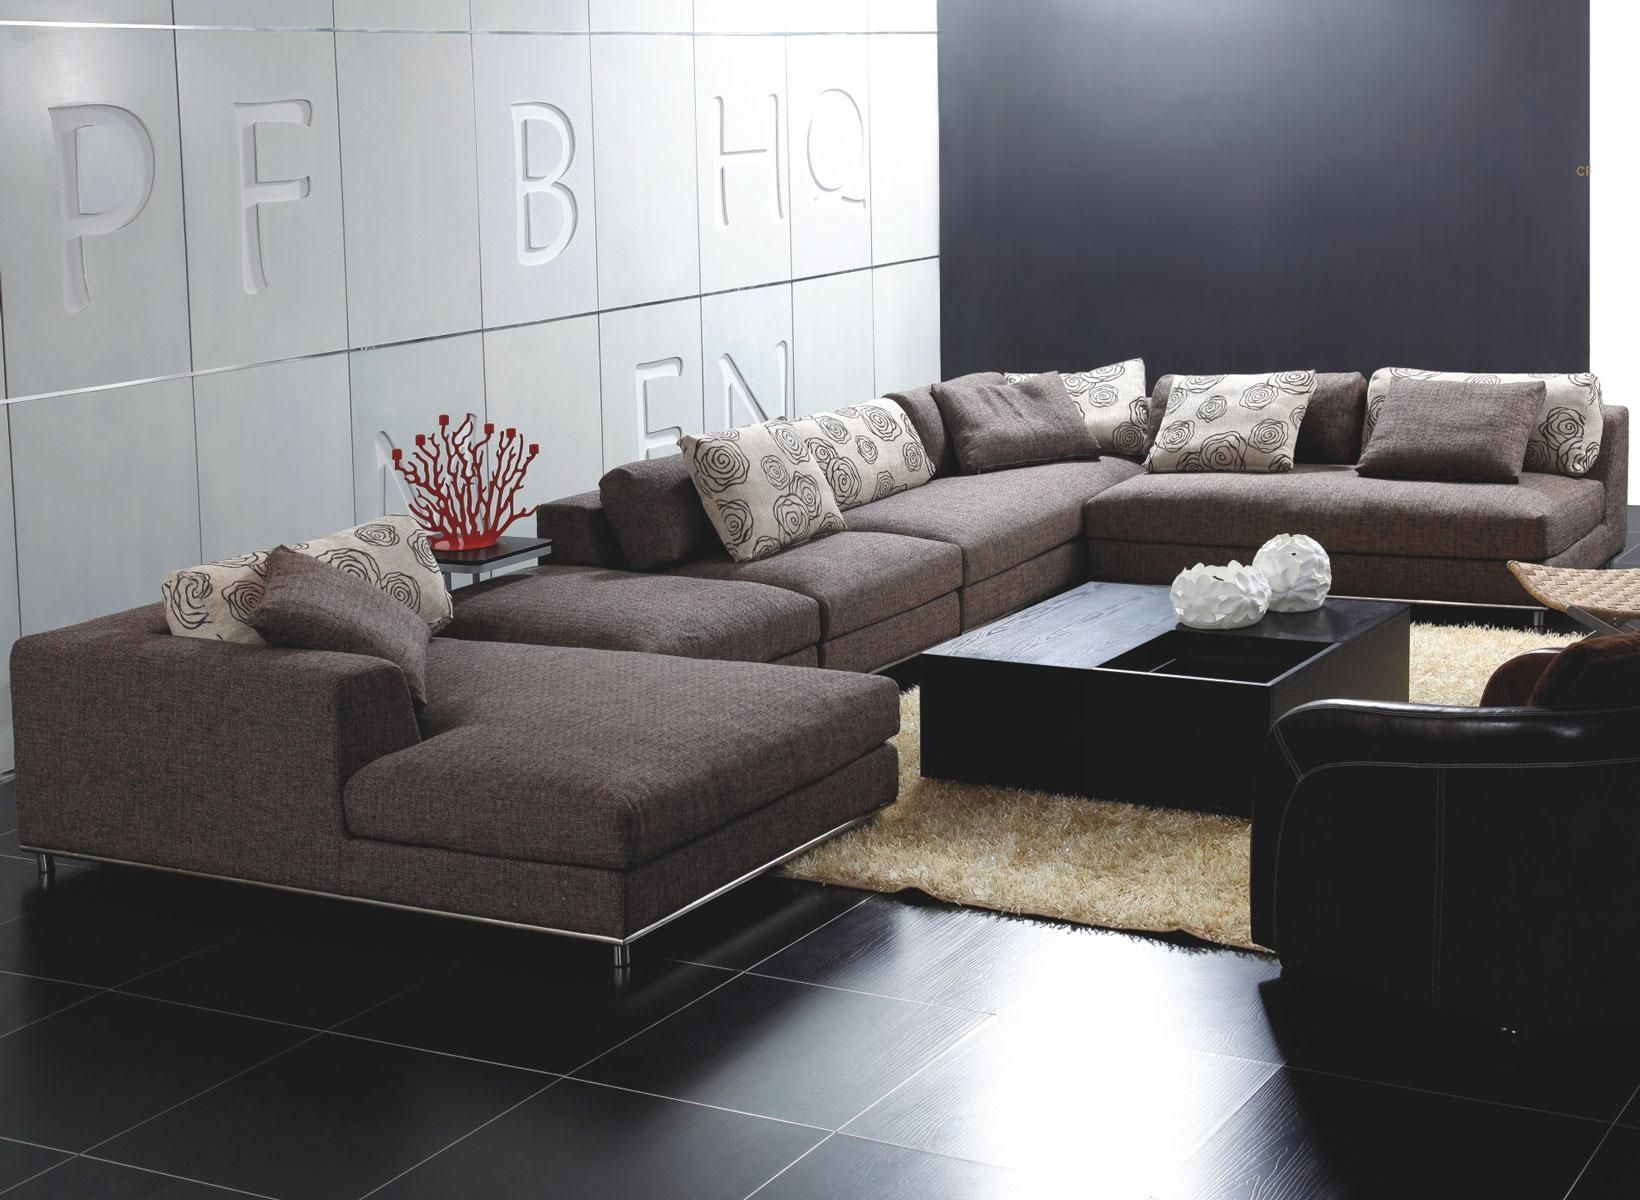 best sectional sofas for the money http ml2r com pinterest rh pinterest com best sofas for the money 2018 best quality sofas for the money